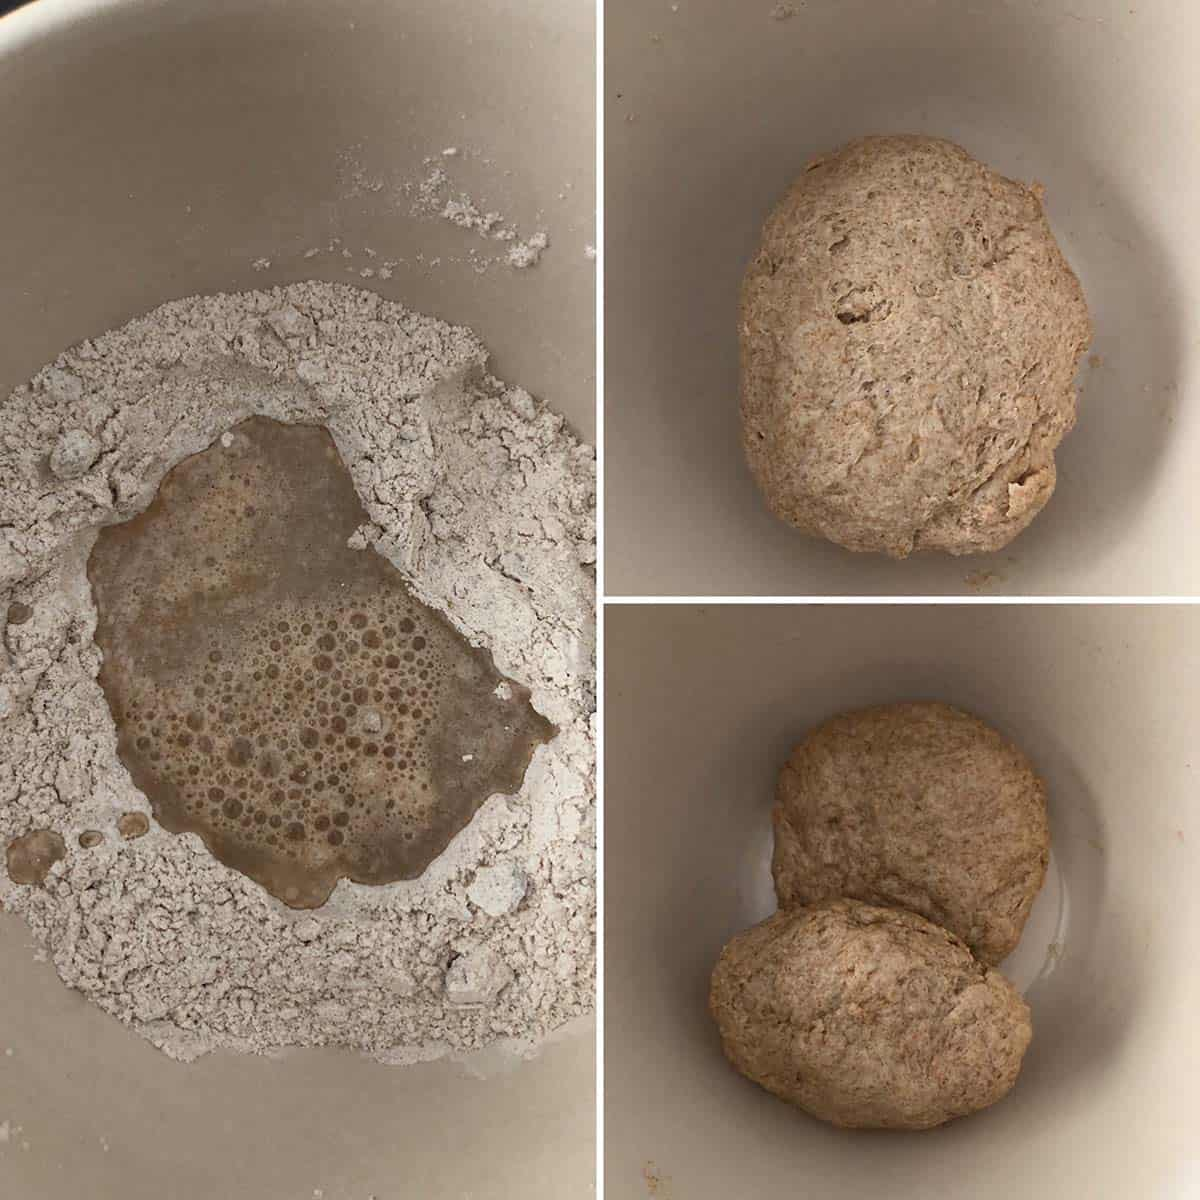 Bowl with flour and water, mixed into a dough and divided into 2 pieces